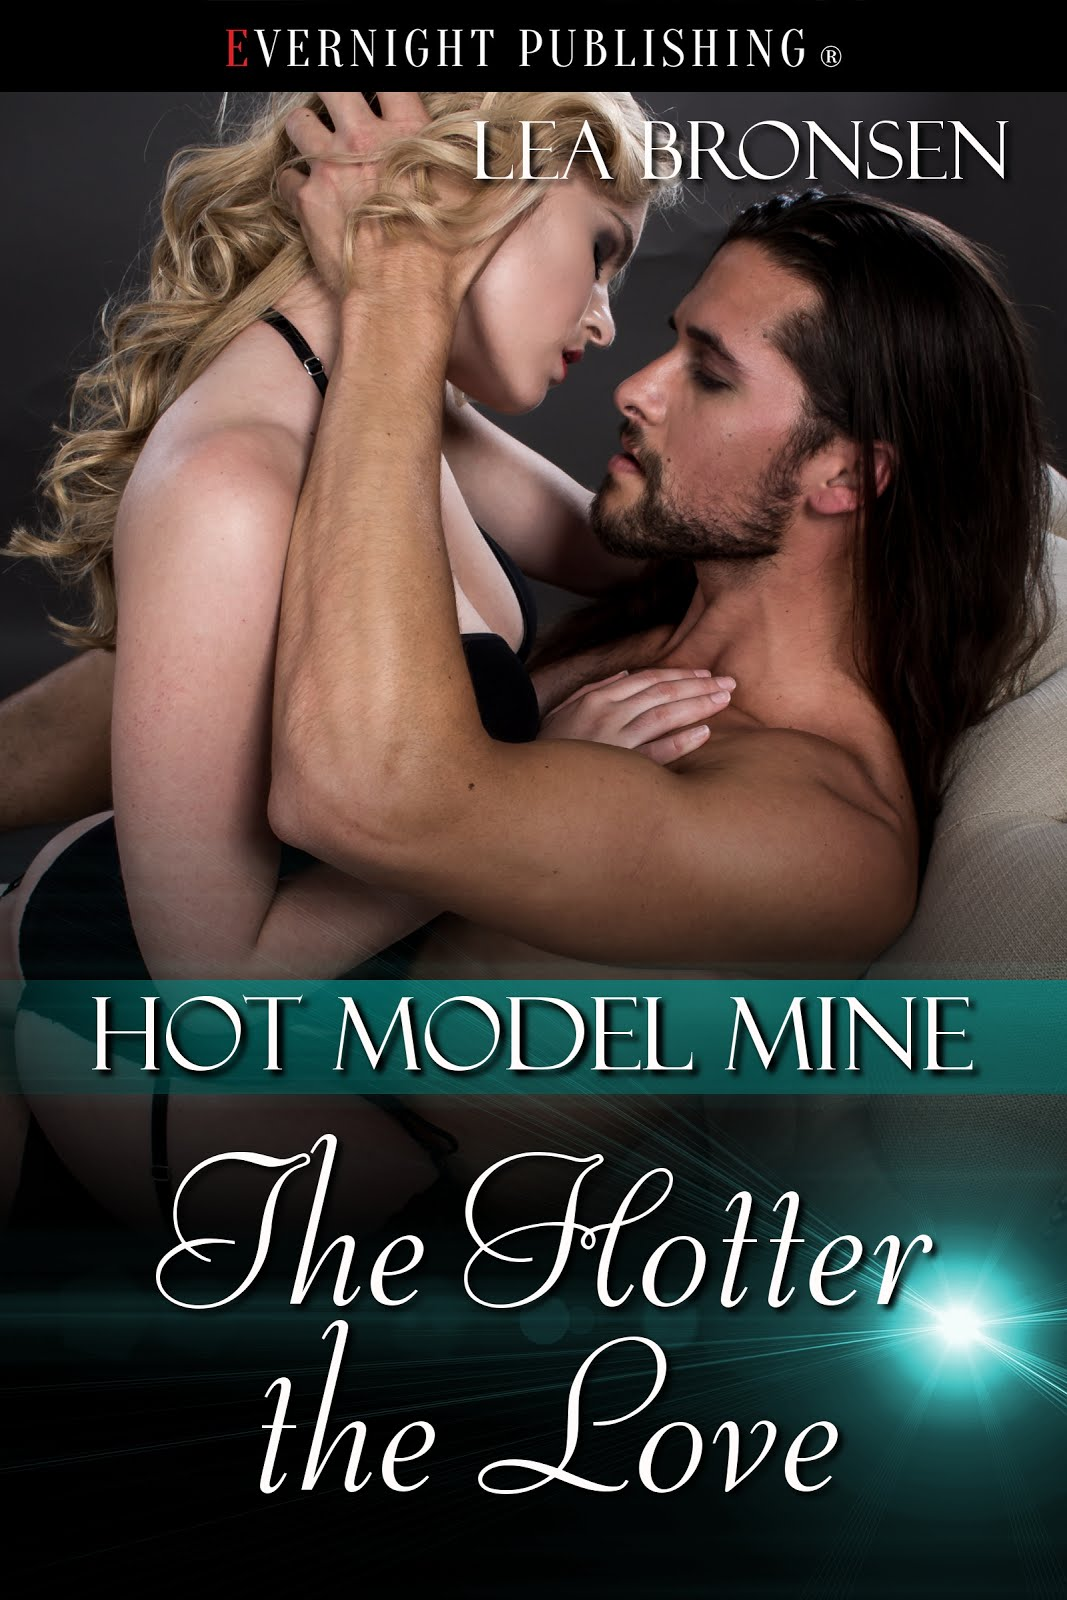 The Hotter The Love by Lea Bronsen